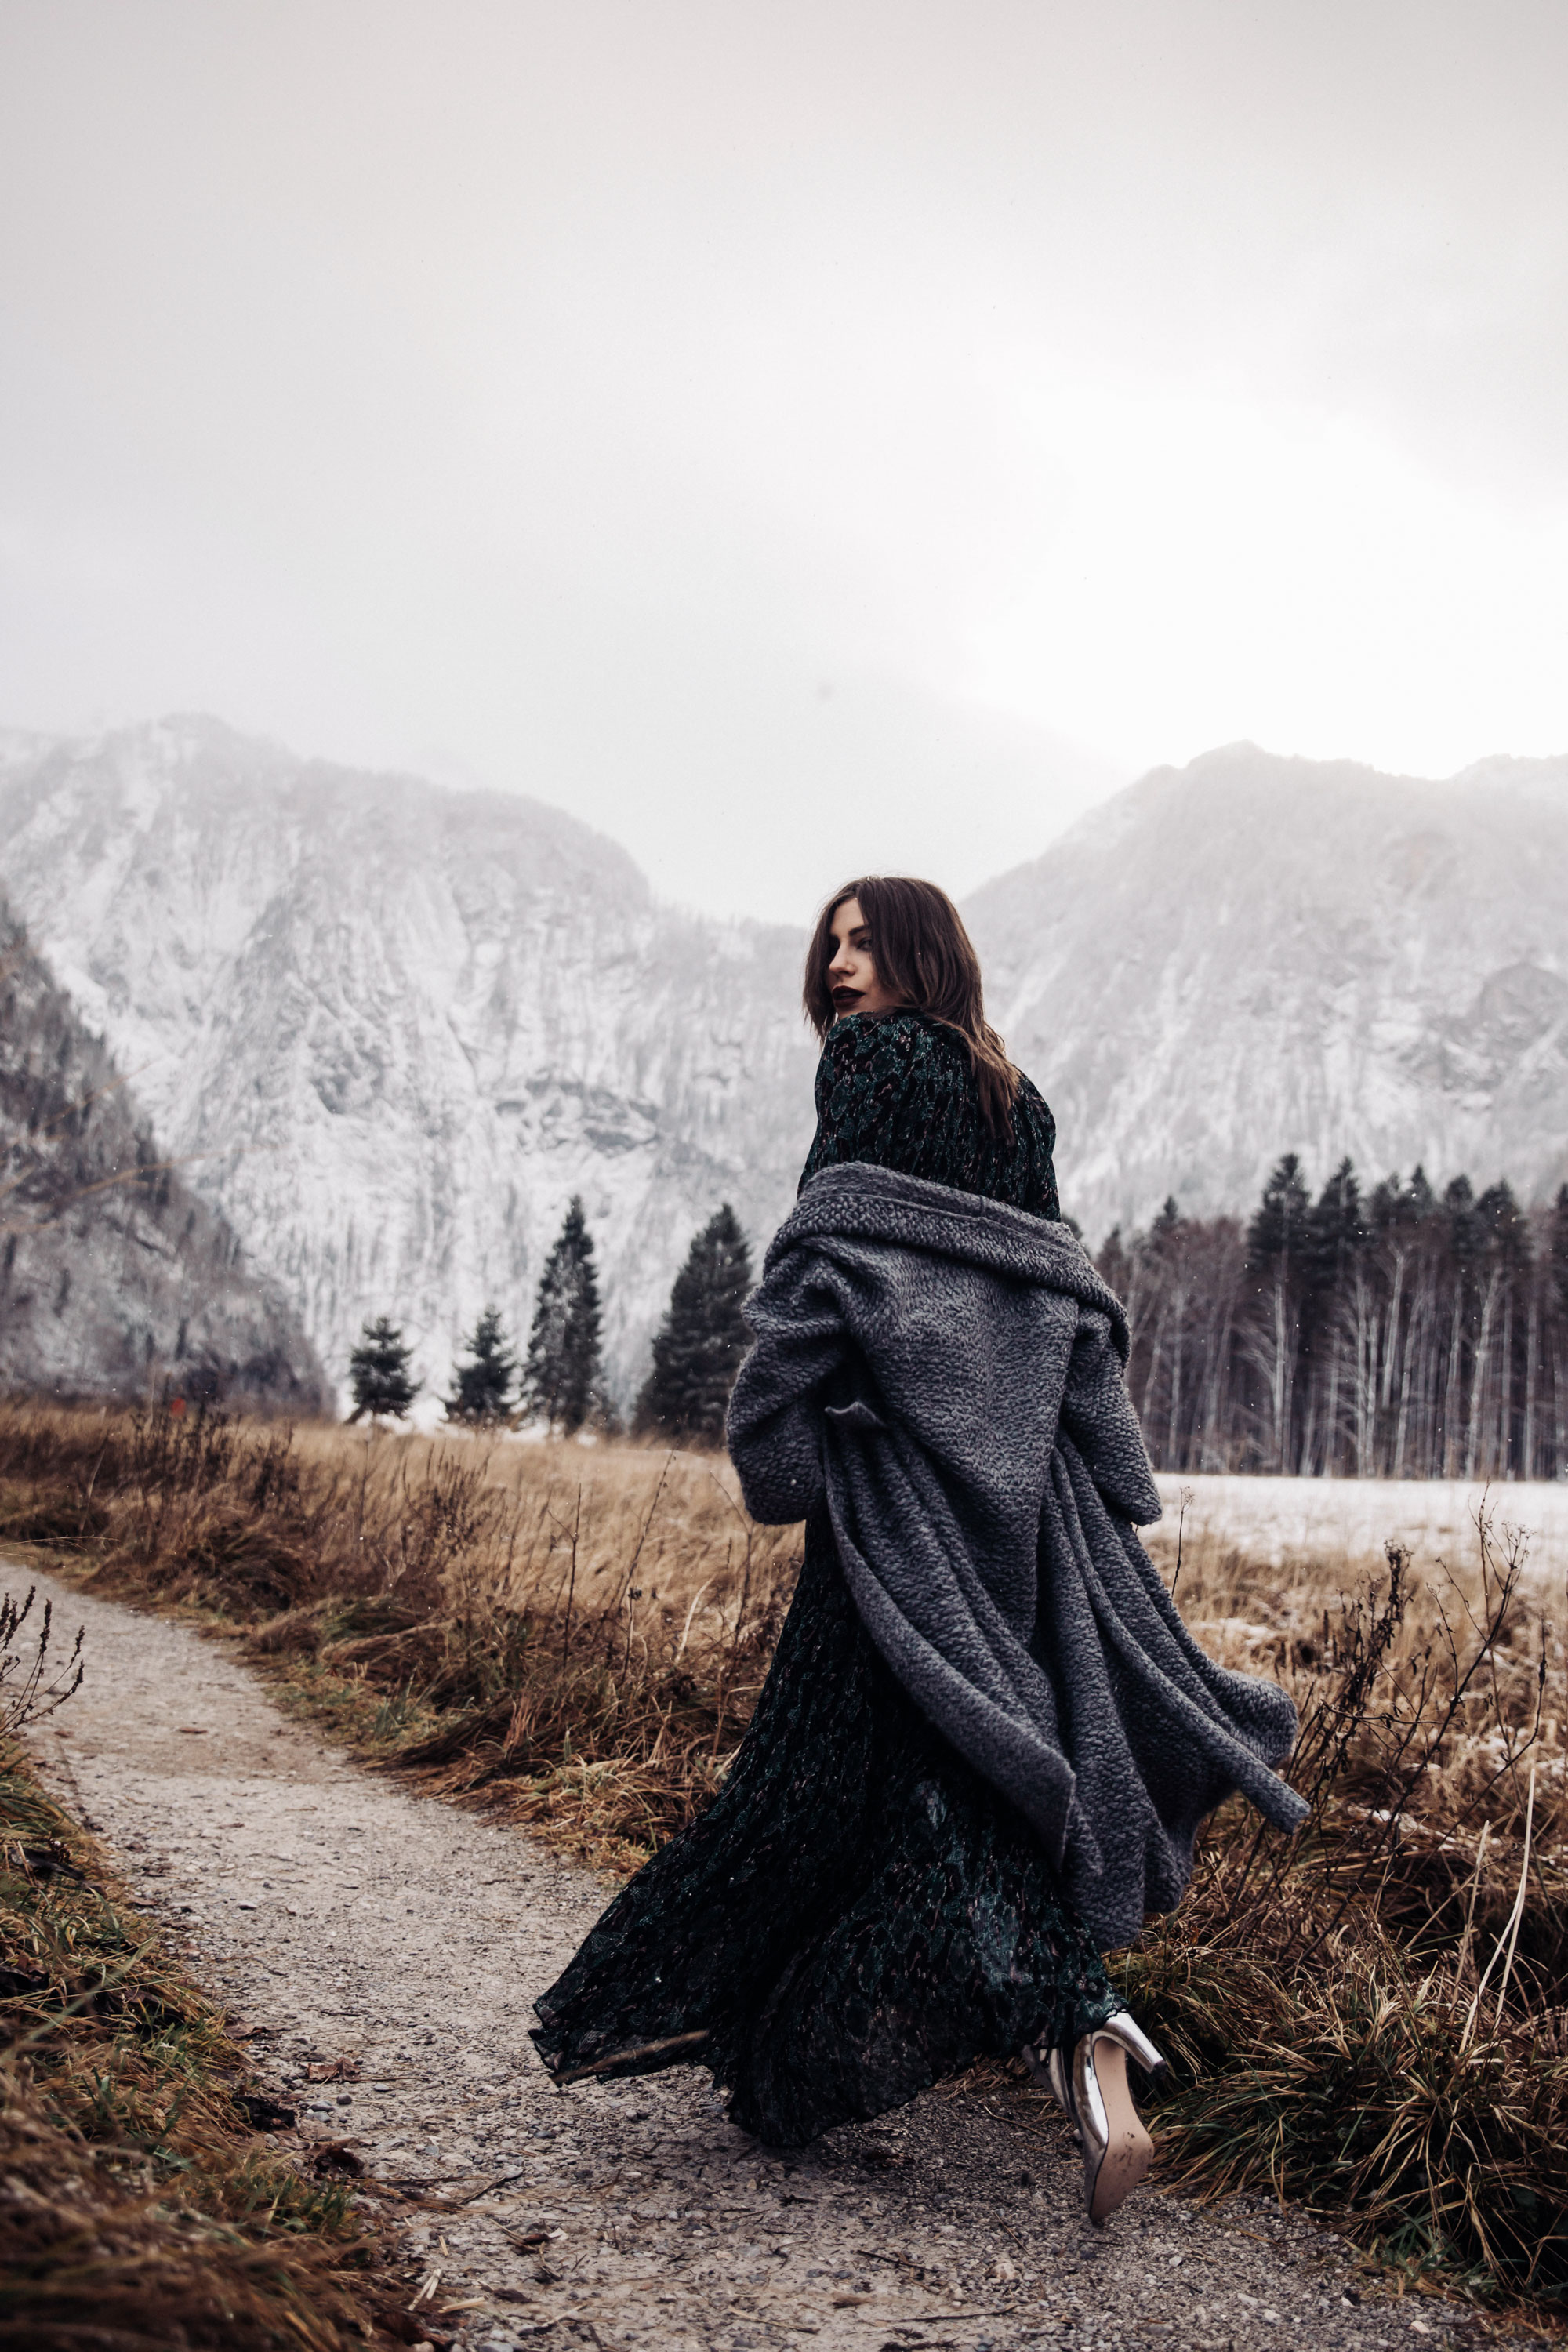 column about time | location: Königsberger See, Bavaria, Germany, Austria, mountains, nature, winter | fashion editorial shooting | generation Y